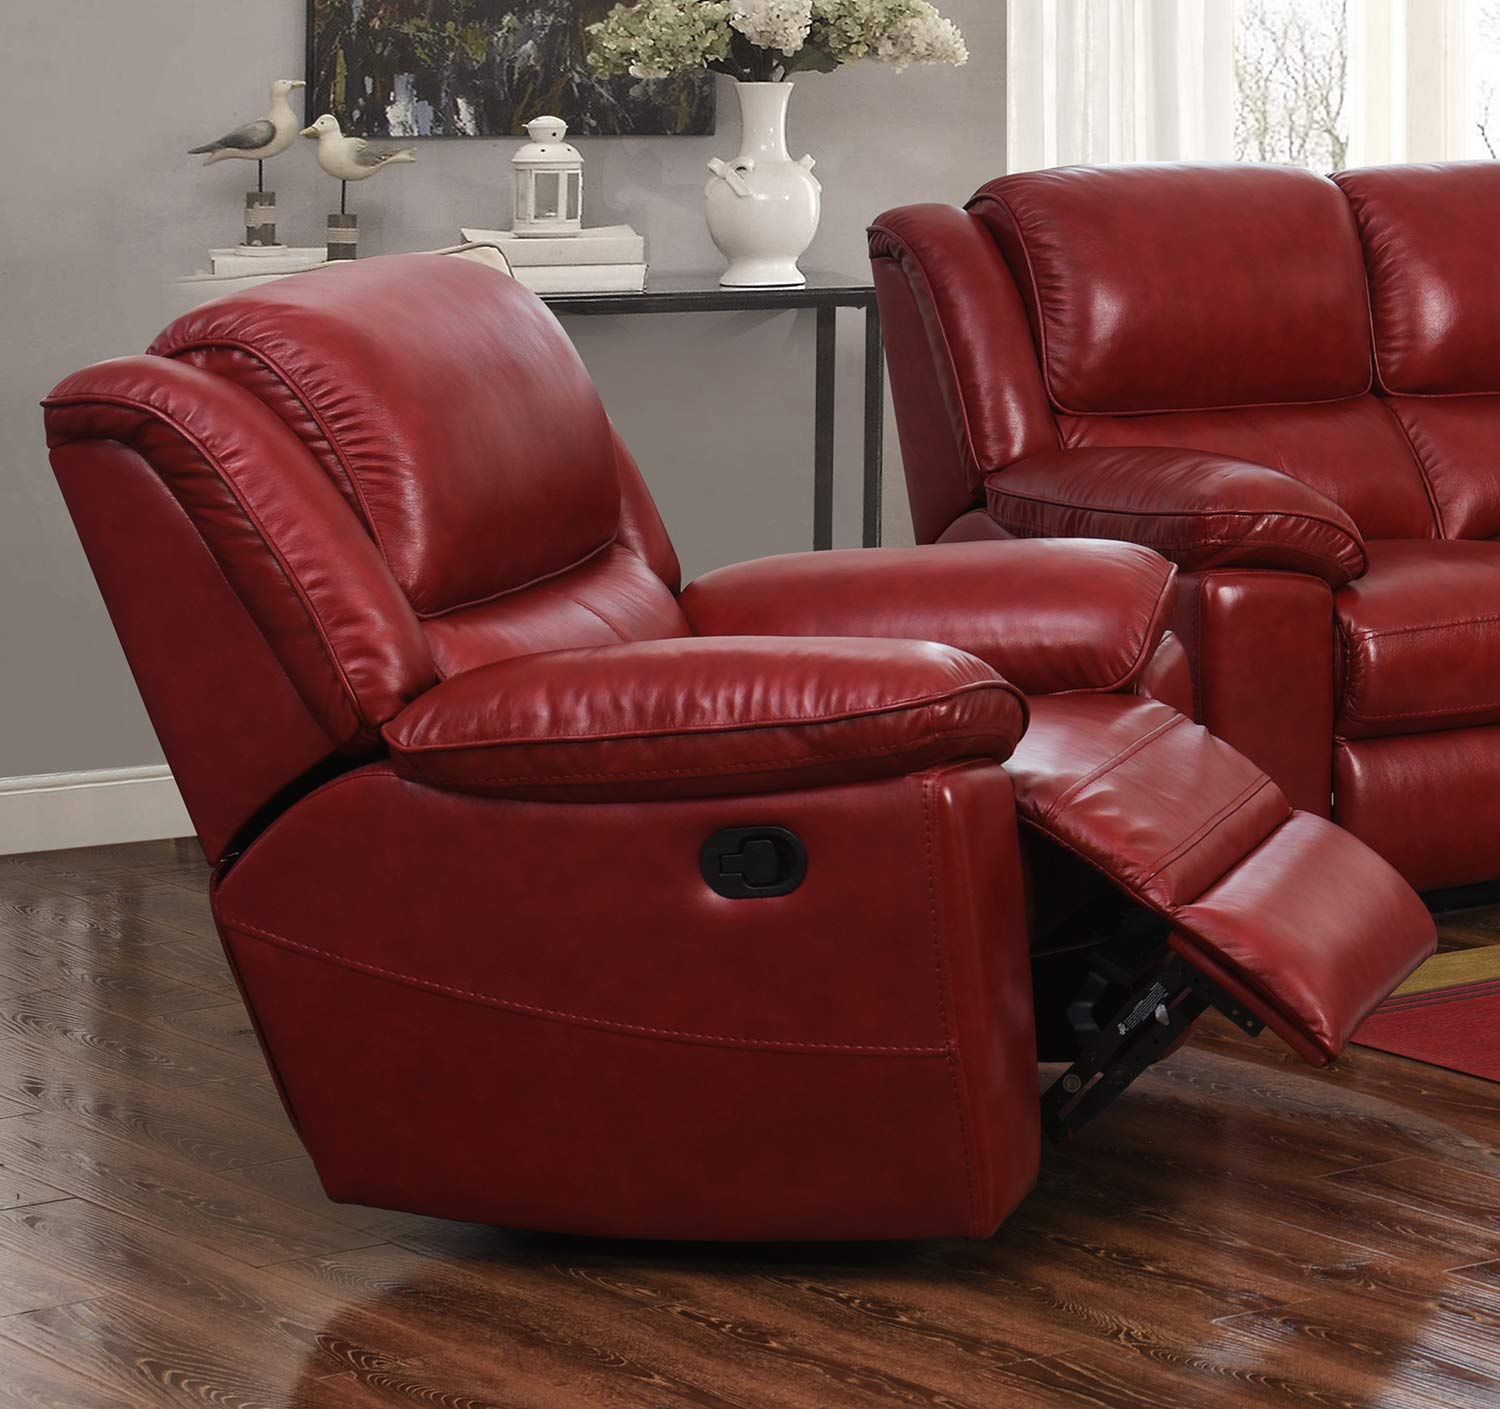 Barcalounger Laguna Swivel Glider Recliner Chair - Contact Red/Leather Match